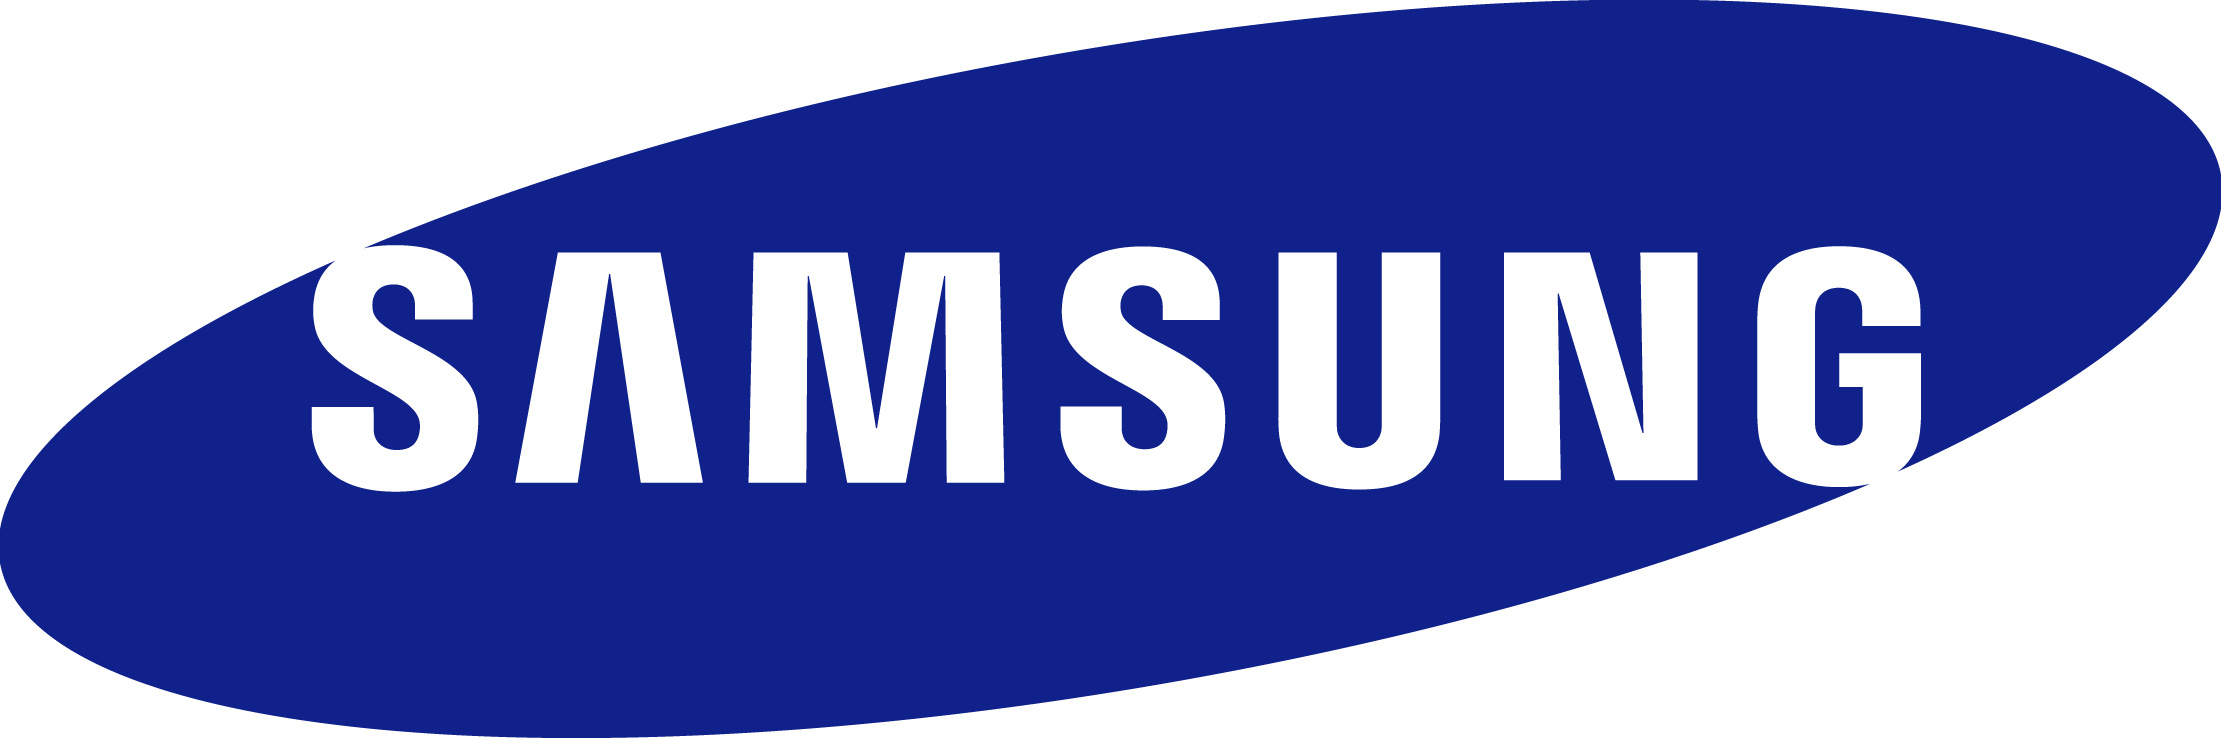 samsung_roadmap_1H_2013